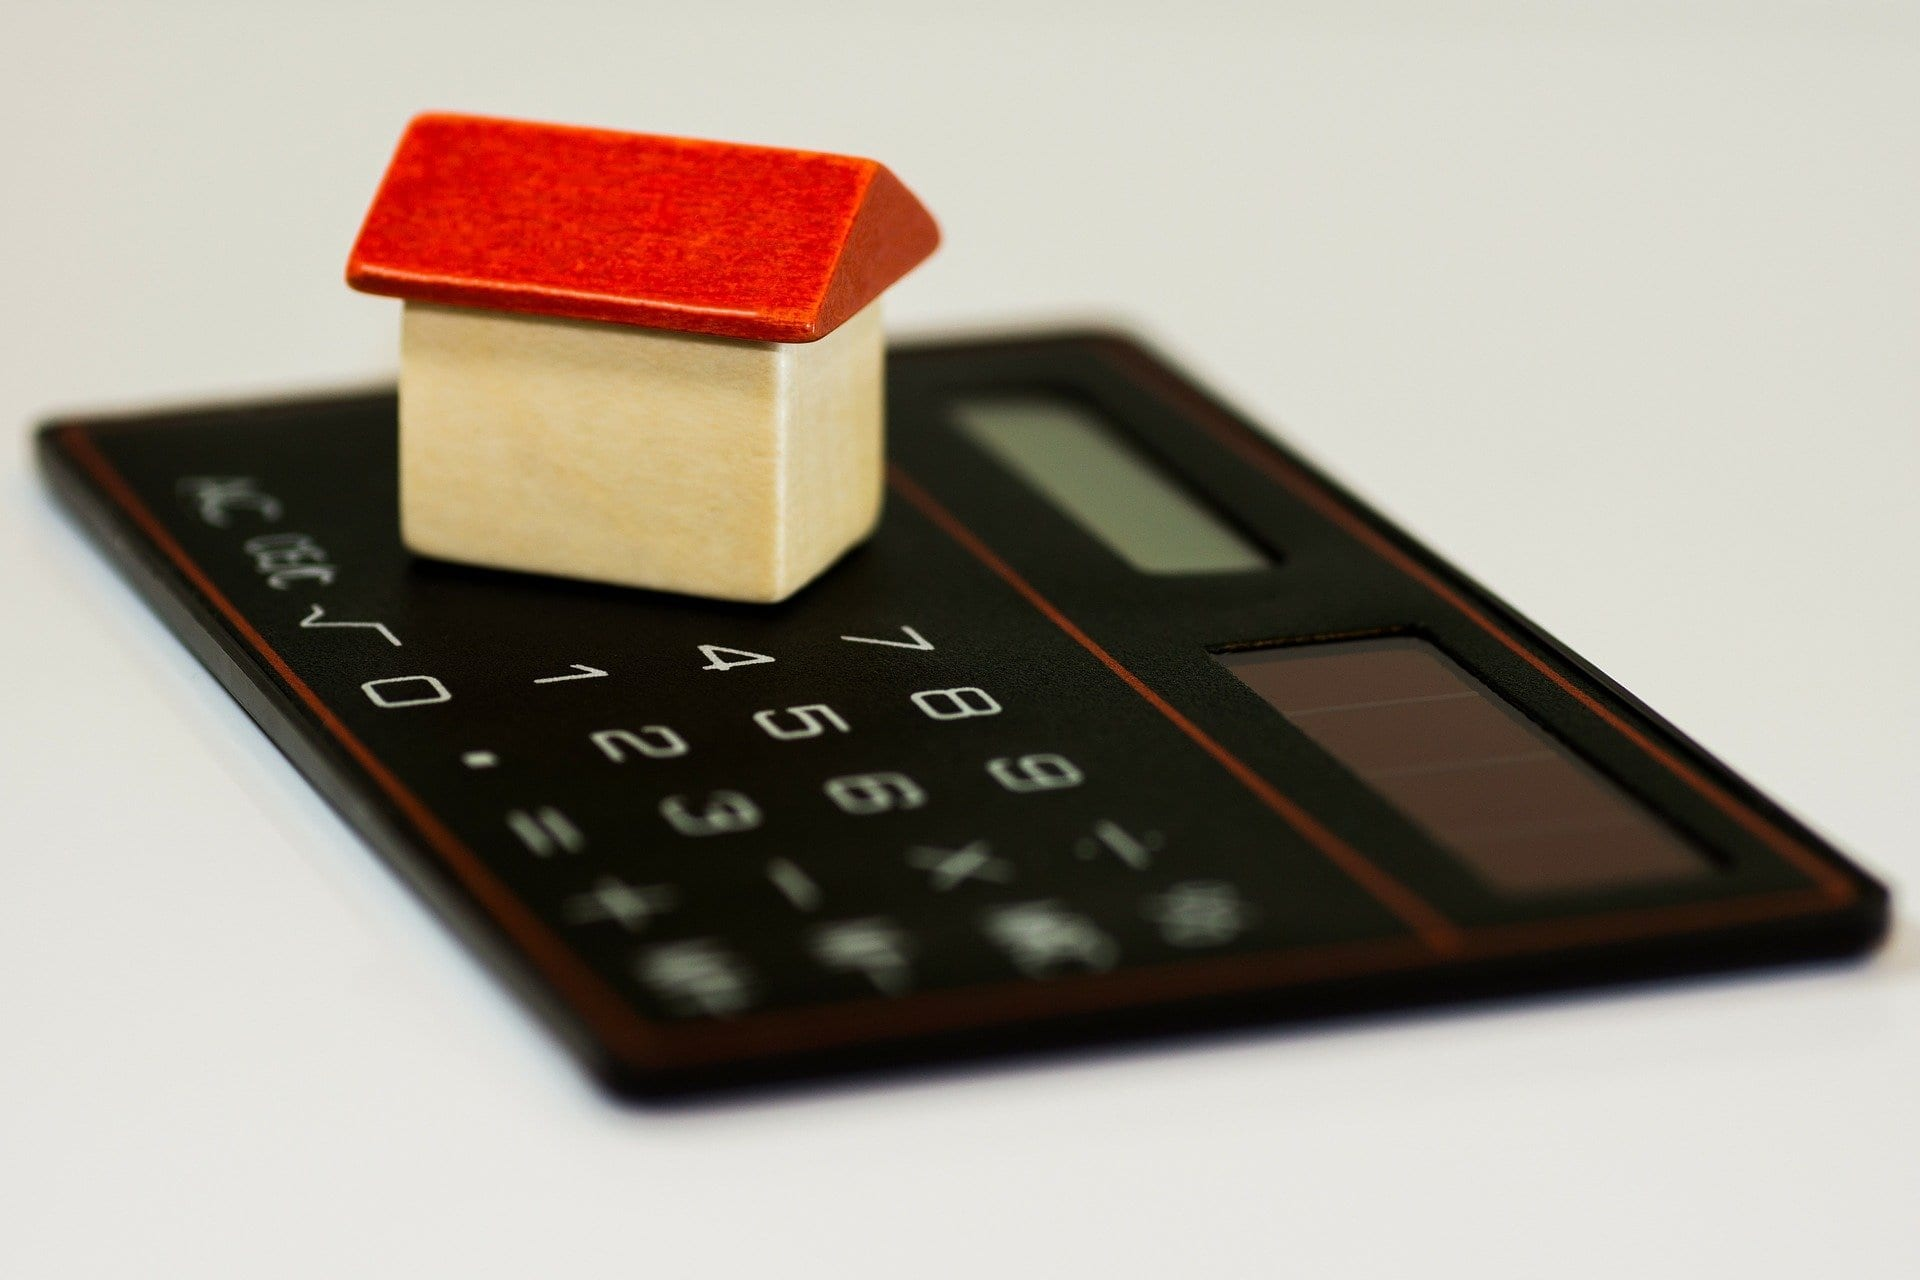 Calculator and small house representing debt restructuring